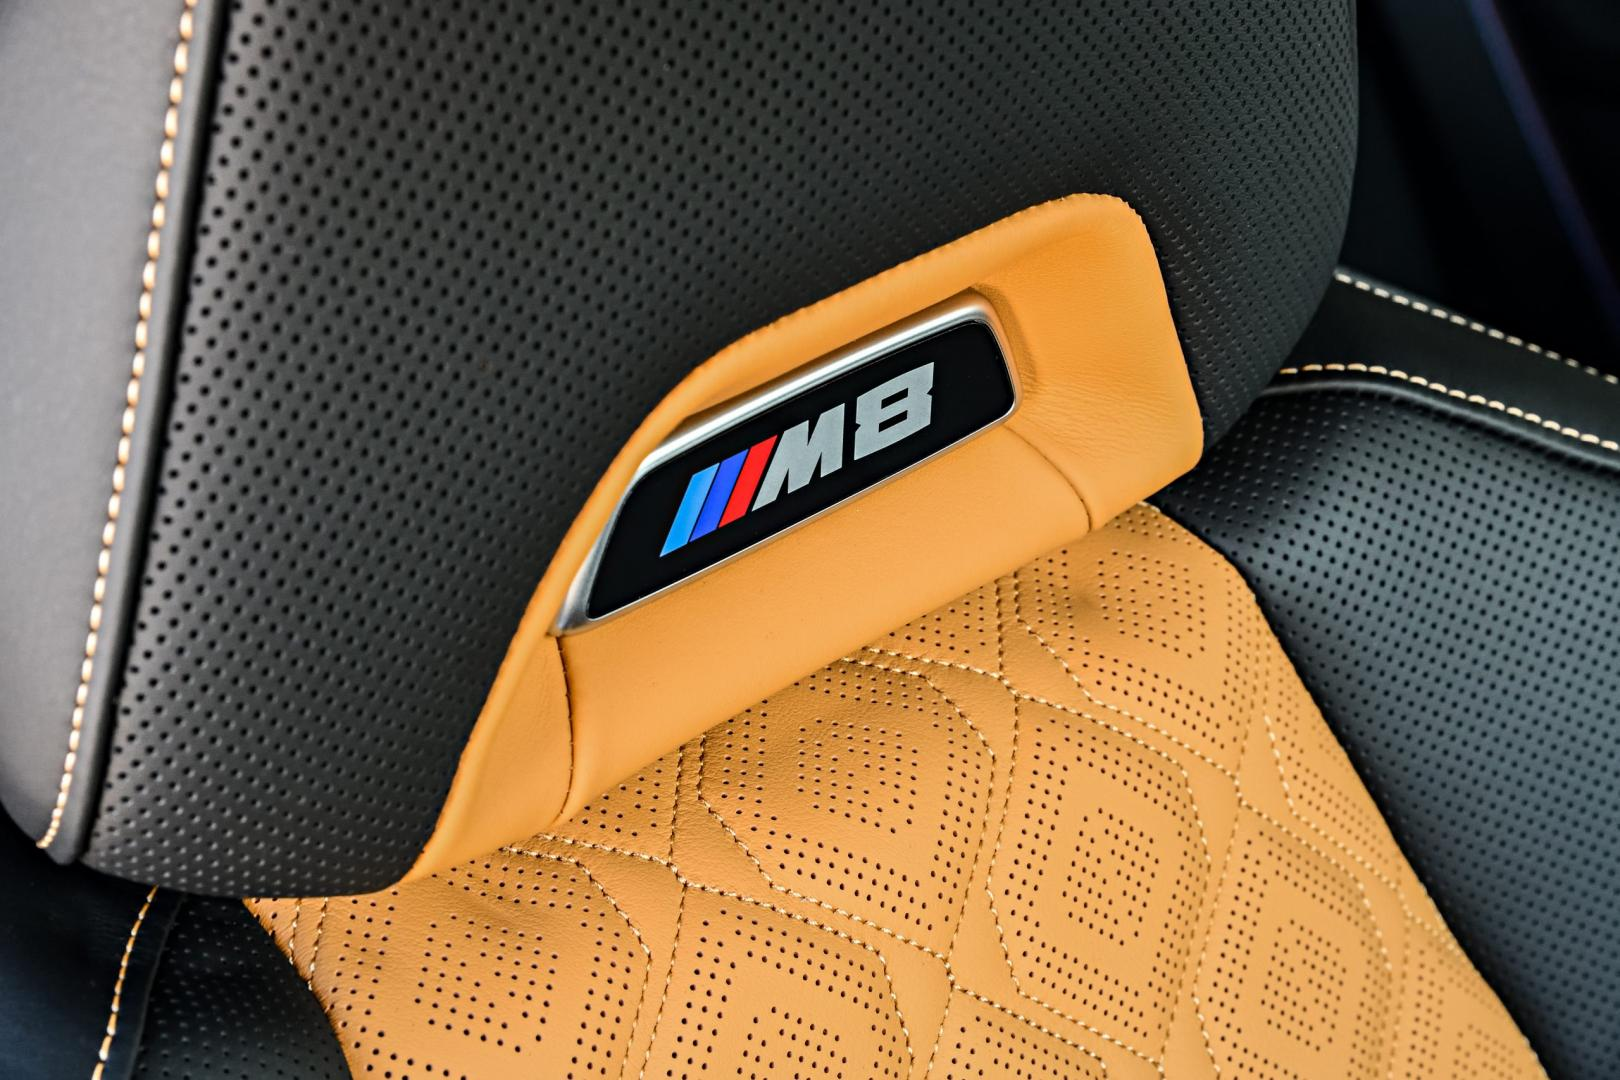 BMW M8 Competition interieur detail hoofdsteun M8 badge